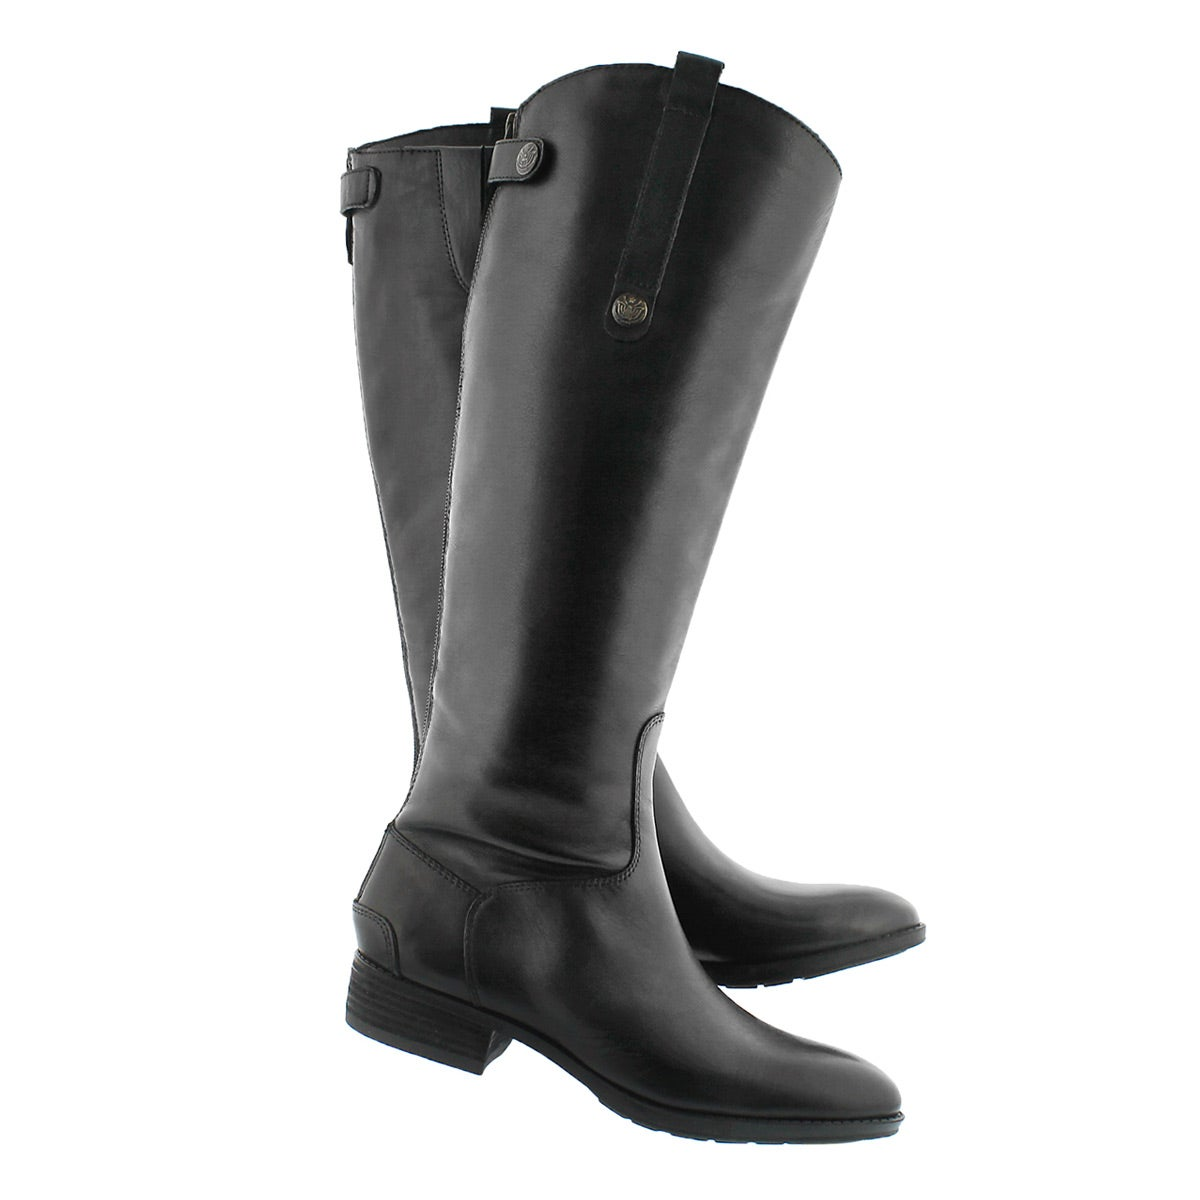 Lds Penny black tall riding boot